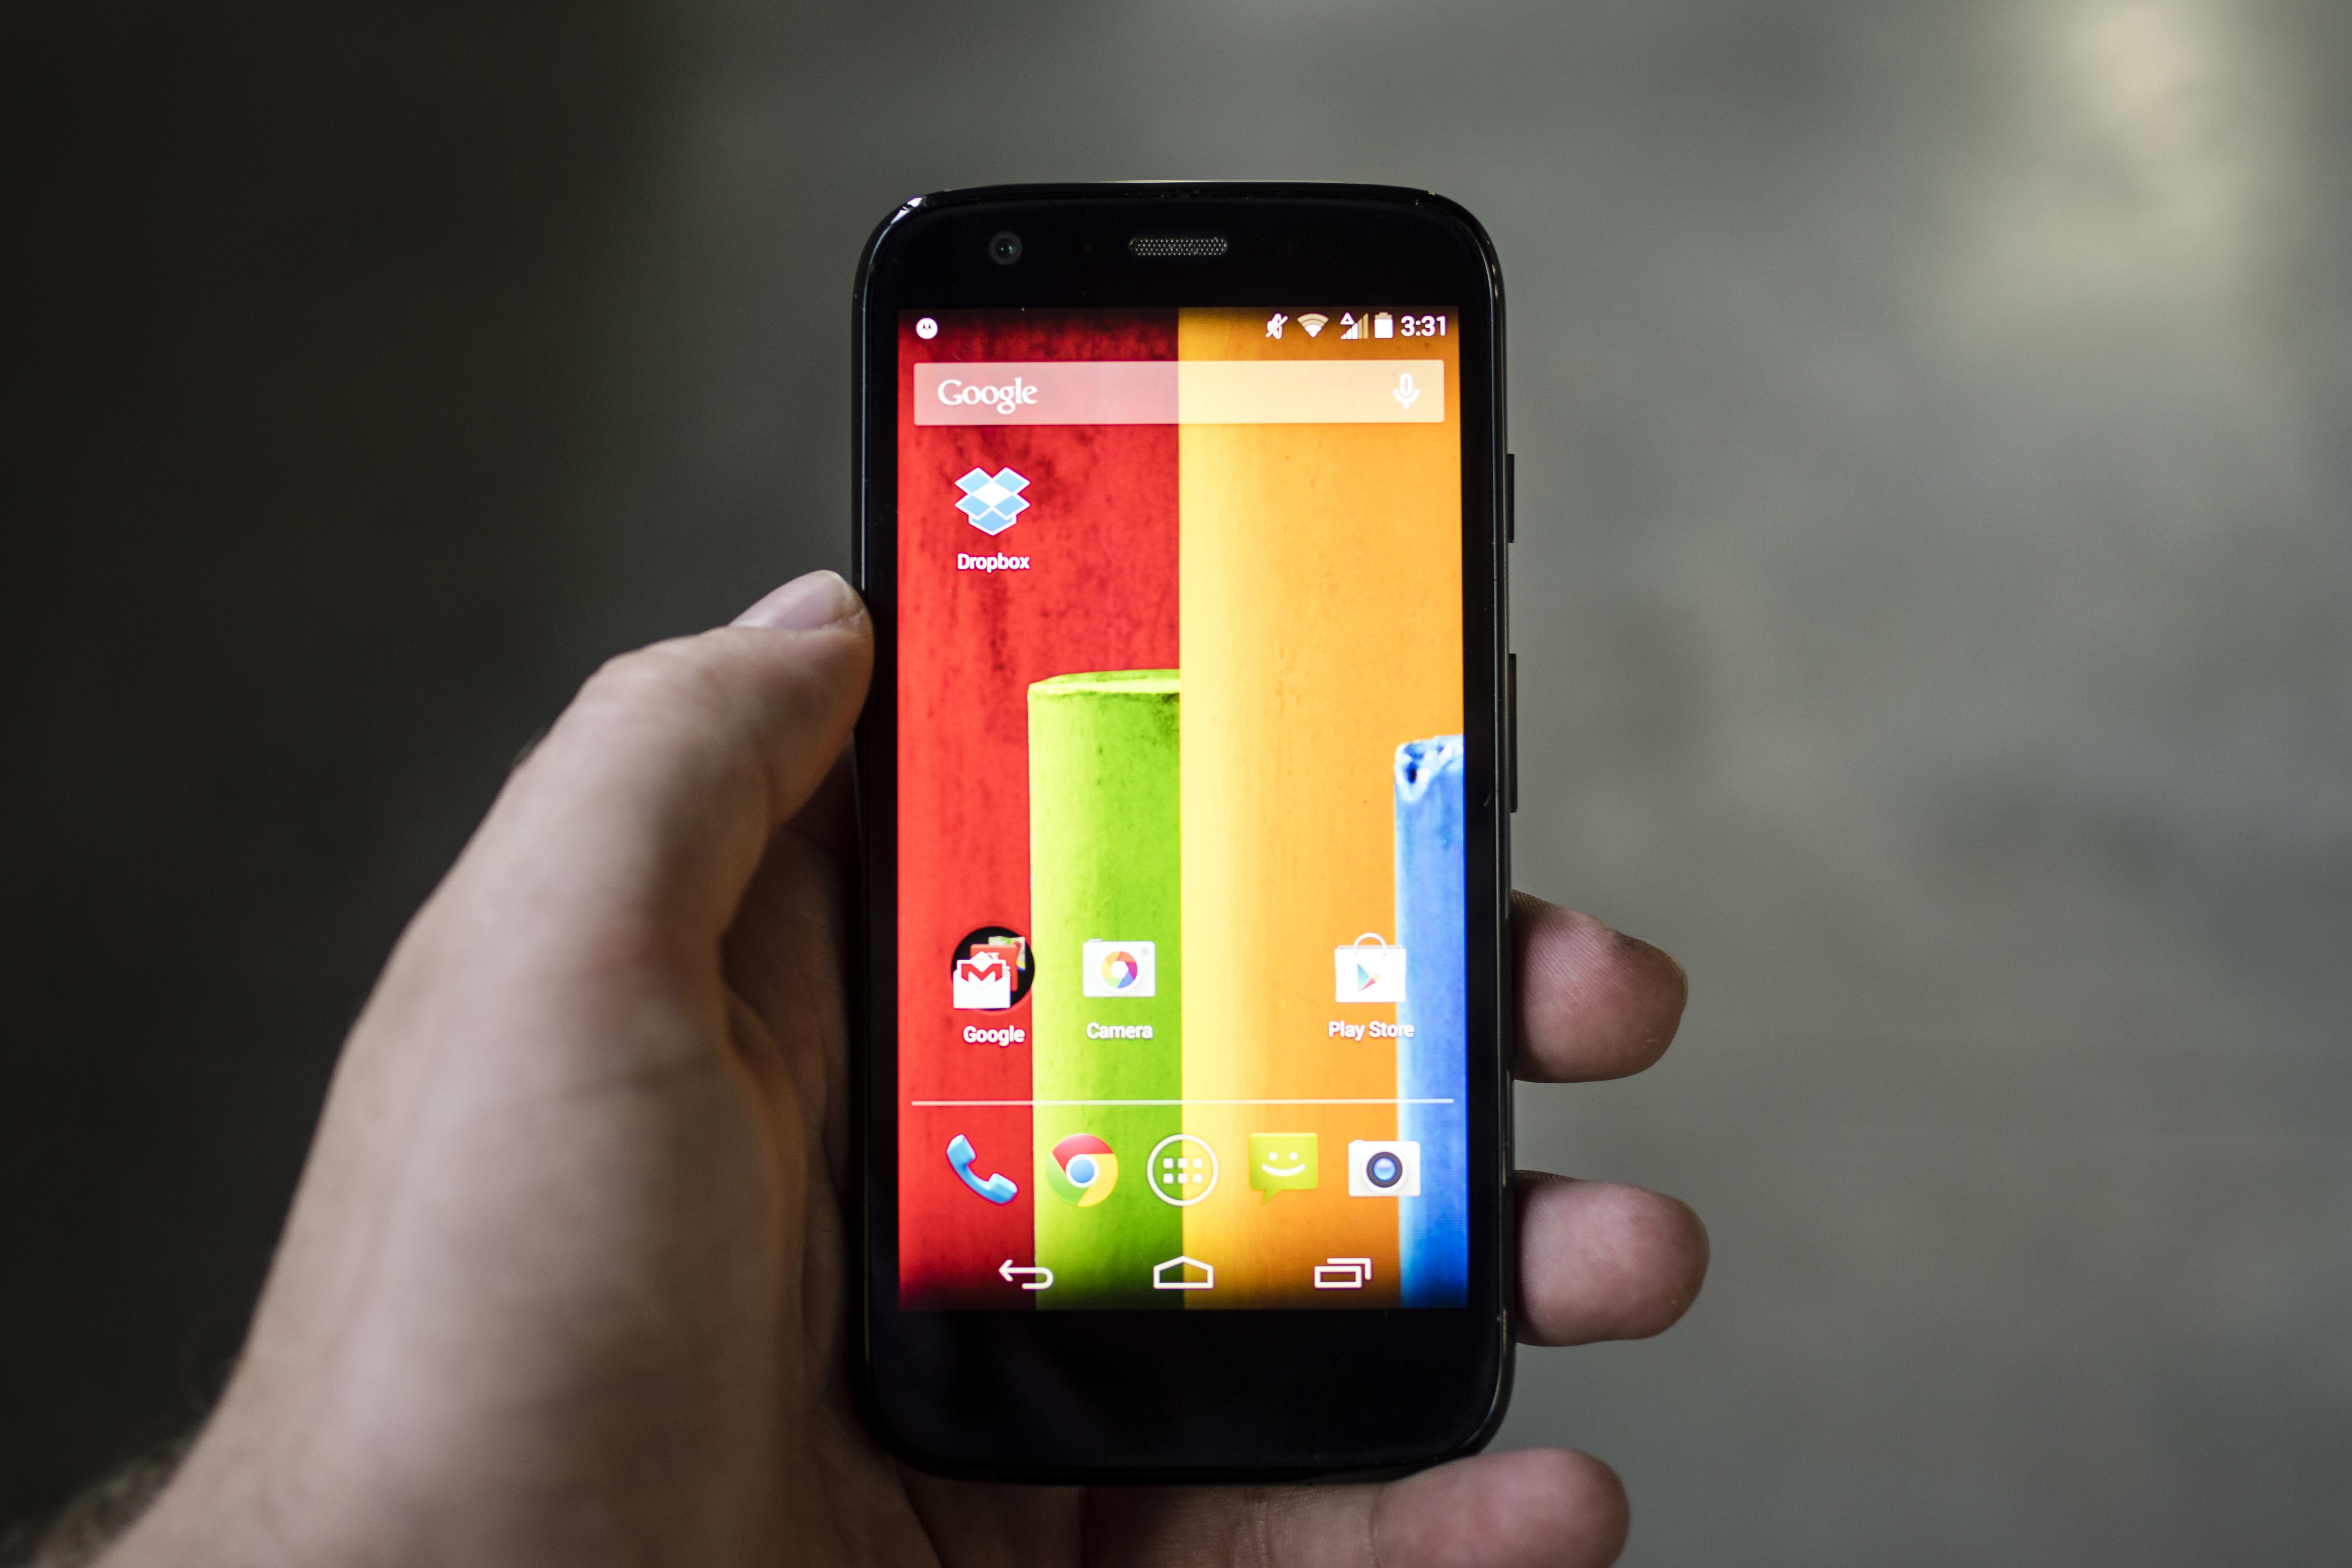 A photo of the Motorola Moto G with 4G LTE in hand.